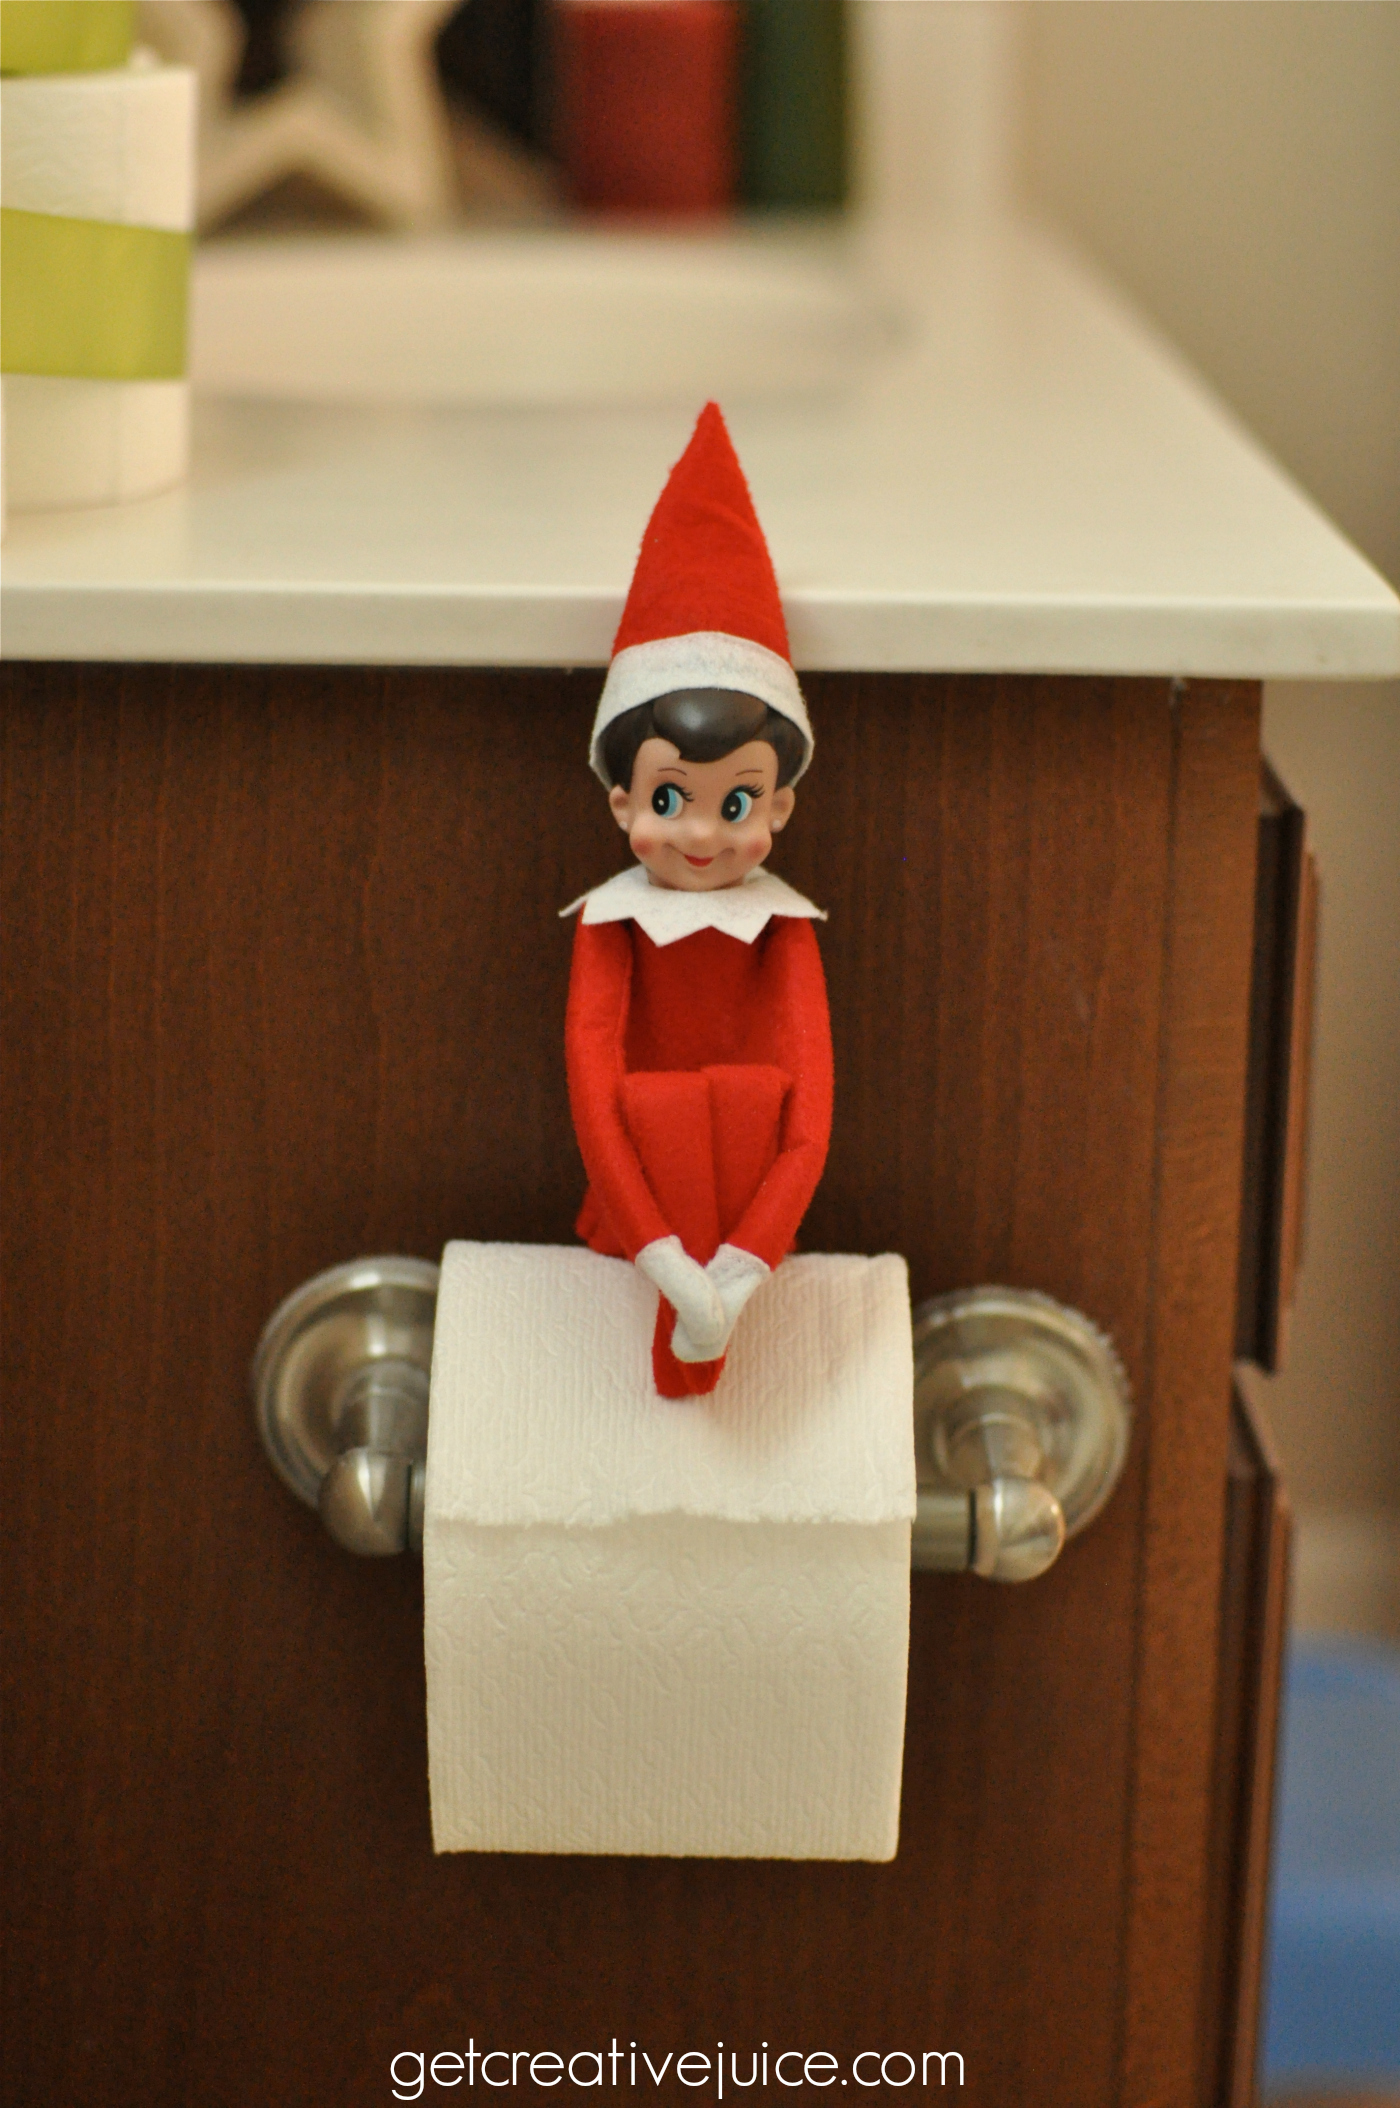 A little holiday potty training and a coupon for Elf on the shelf bathroom ideas